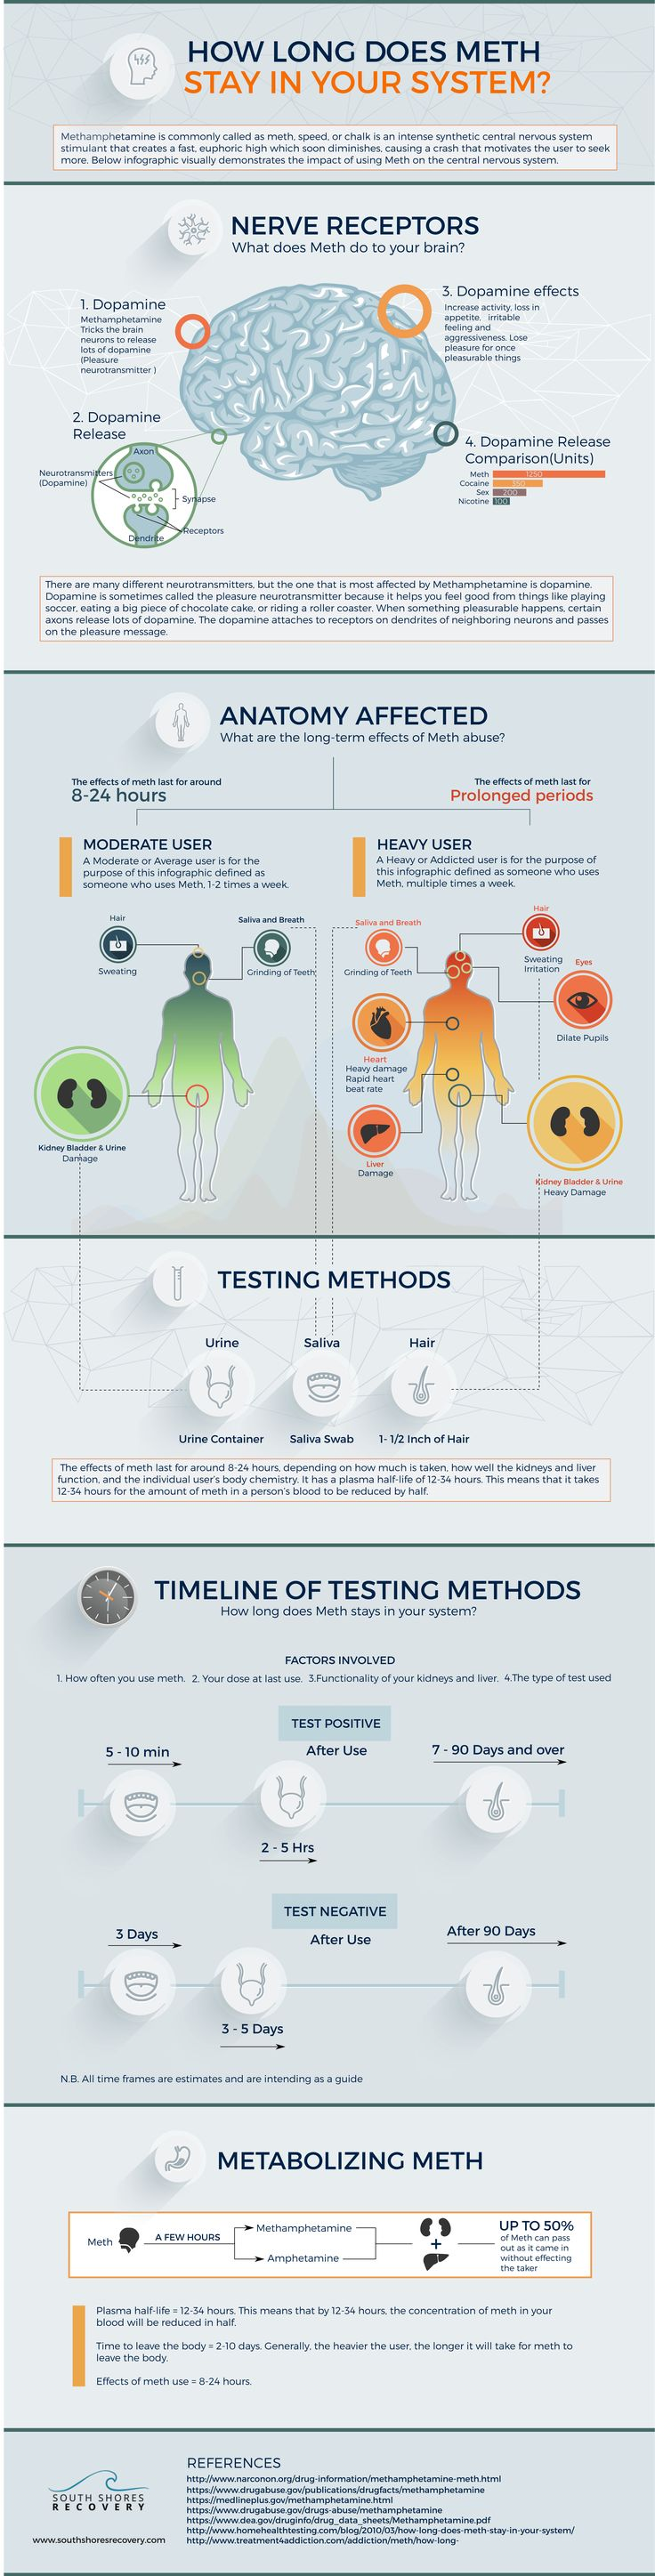 Infographic: Crystal Meth & Your Brain